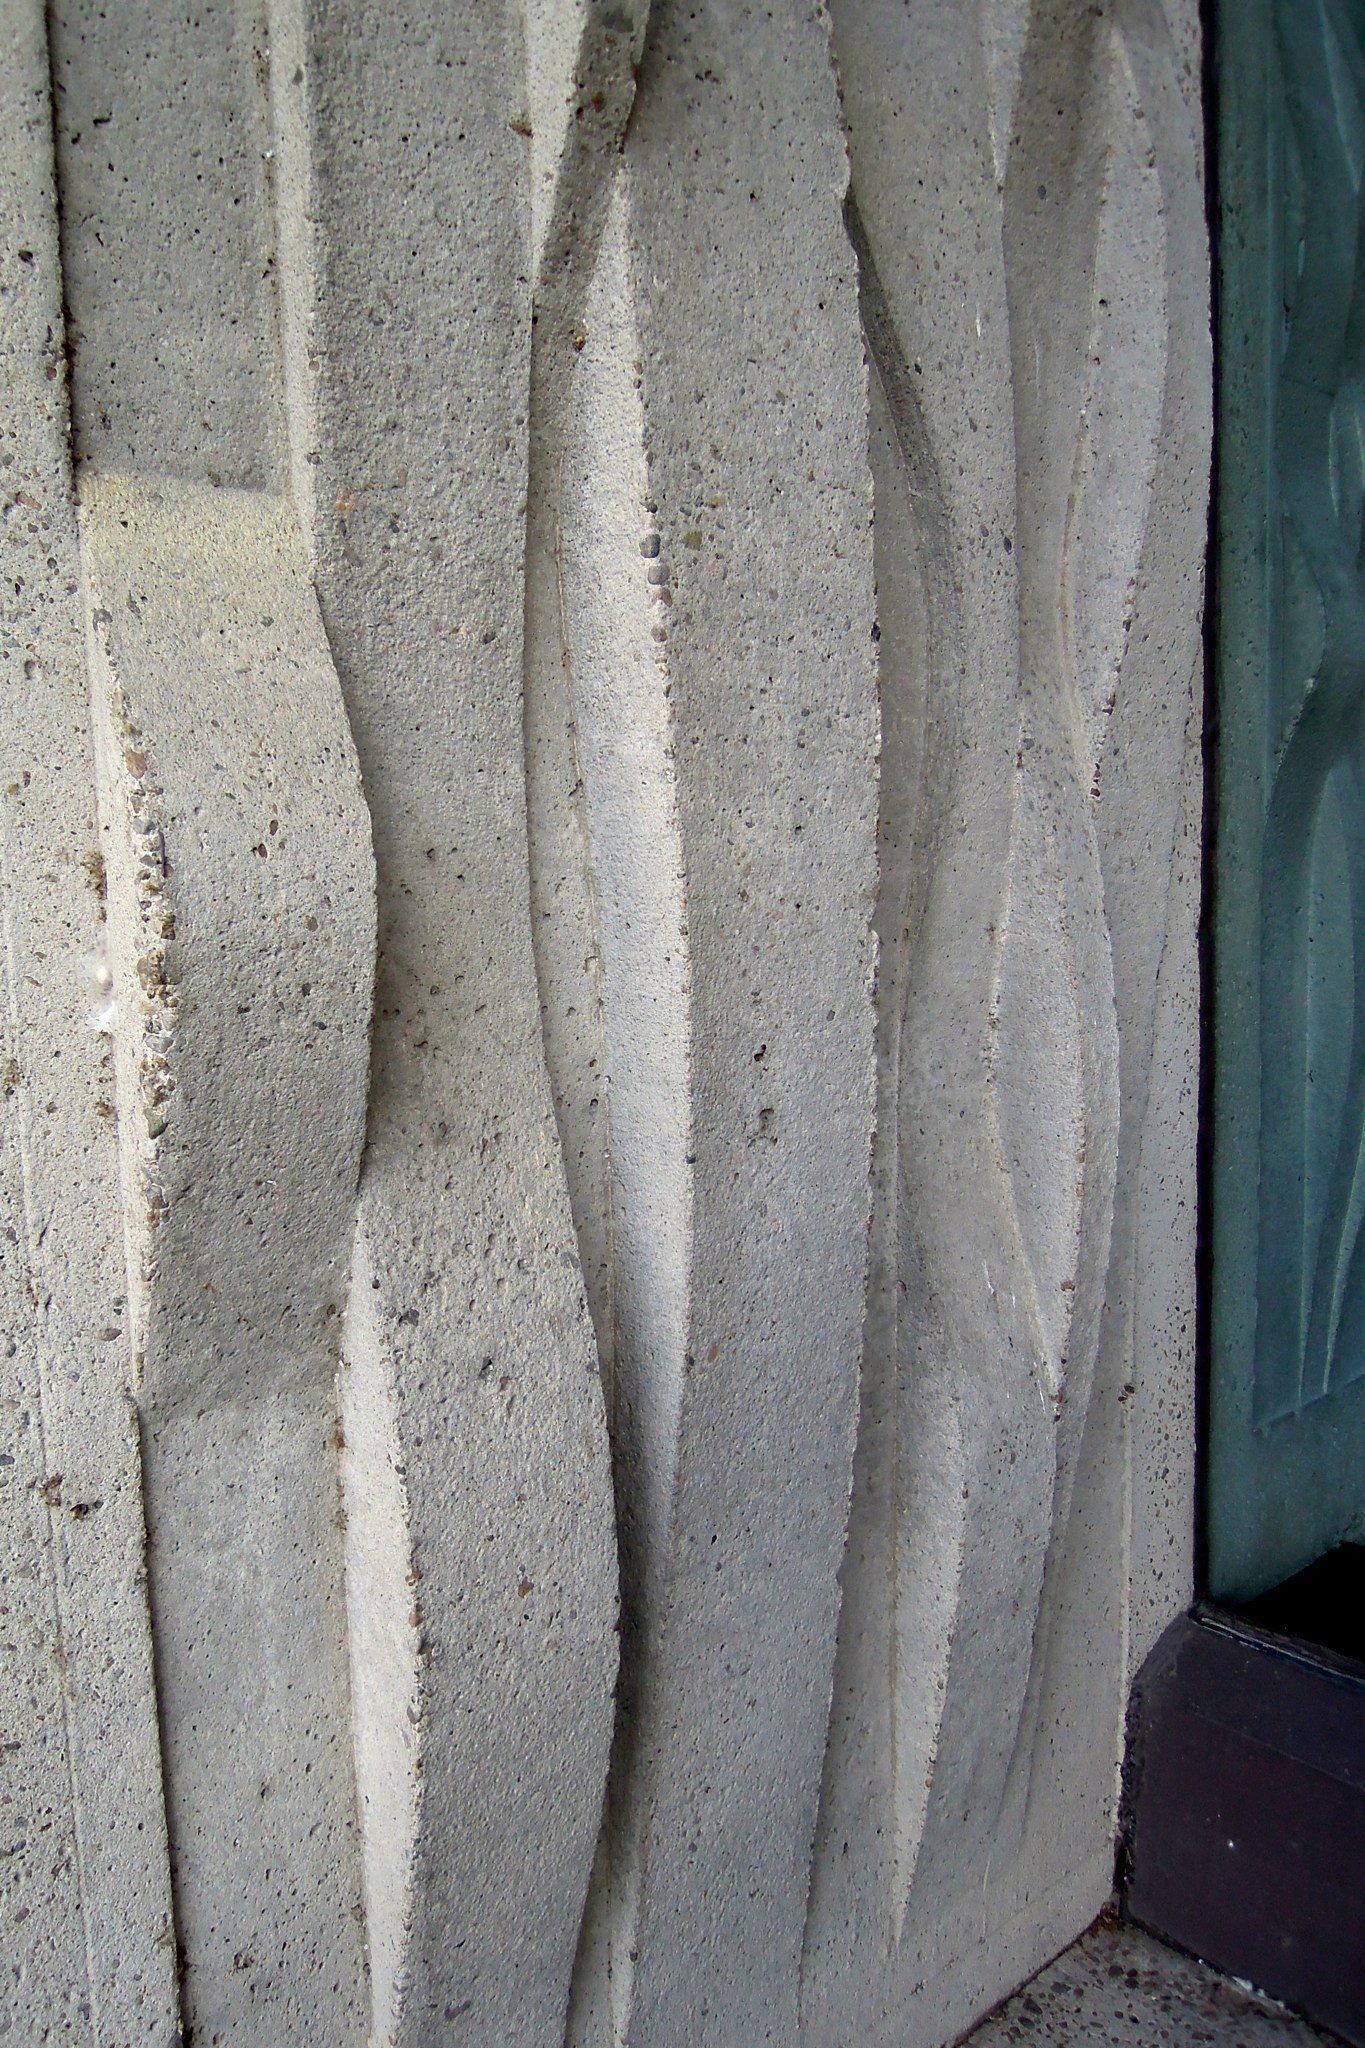 Concrete detail outside of the Administration and News Pavilion, now Wing 1 of the Port of Montreal building